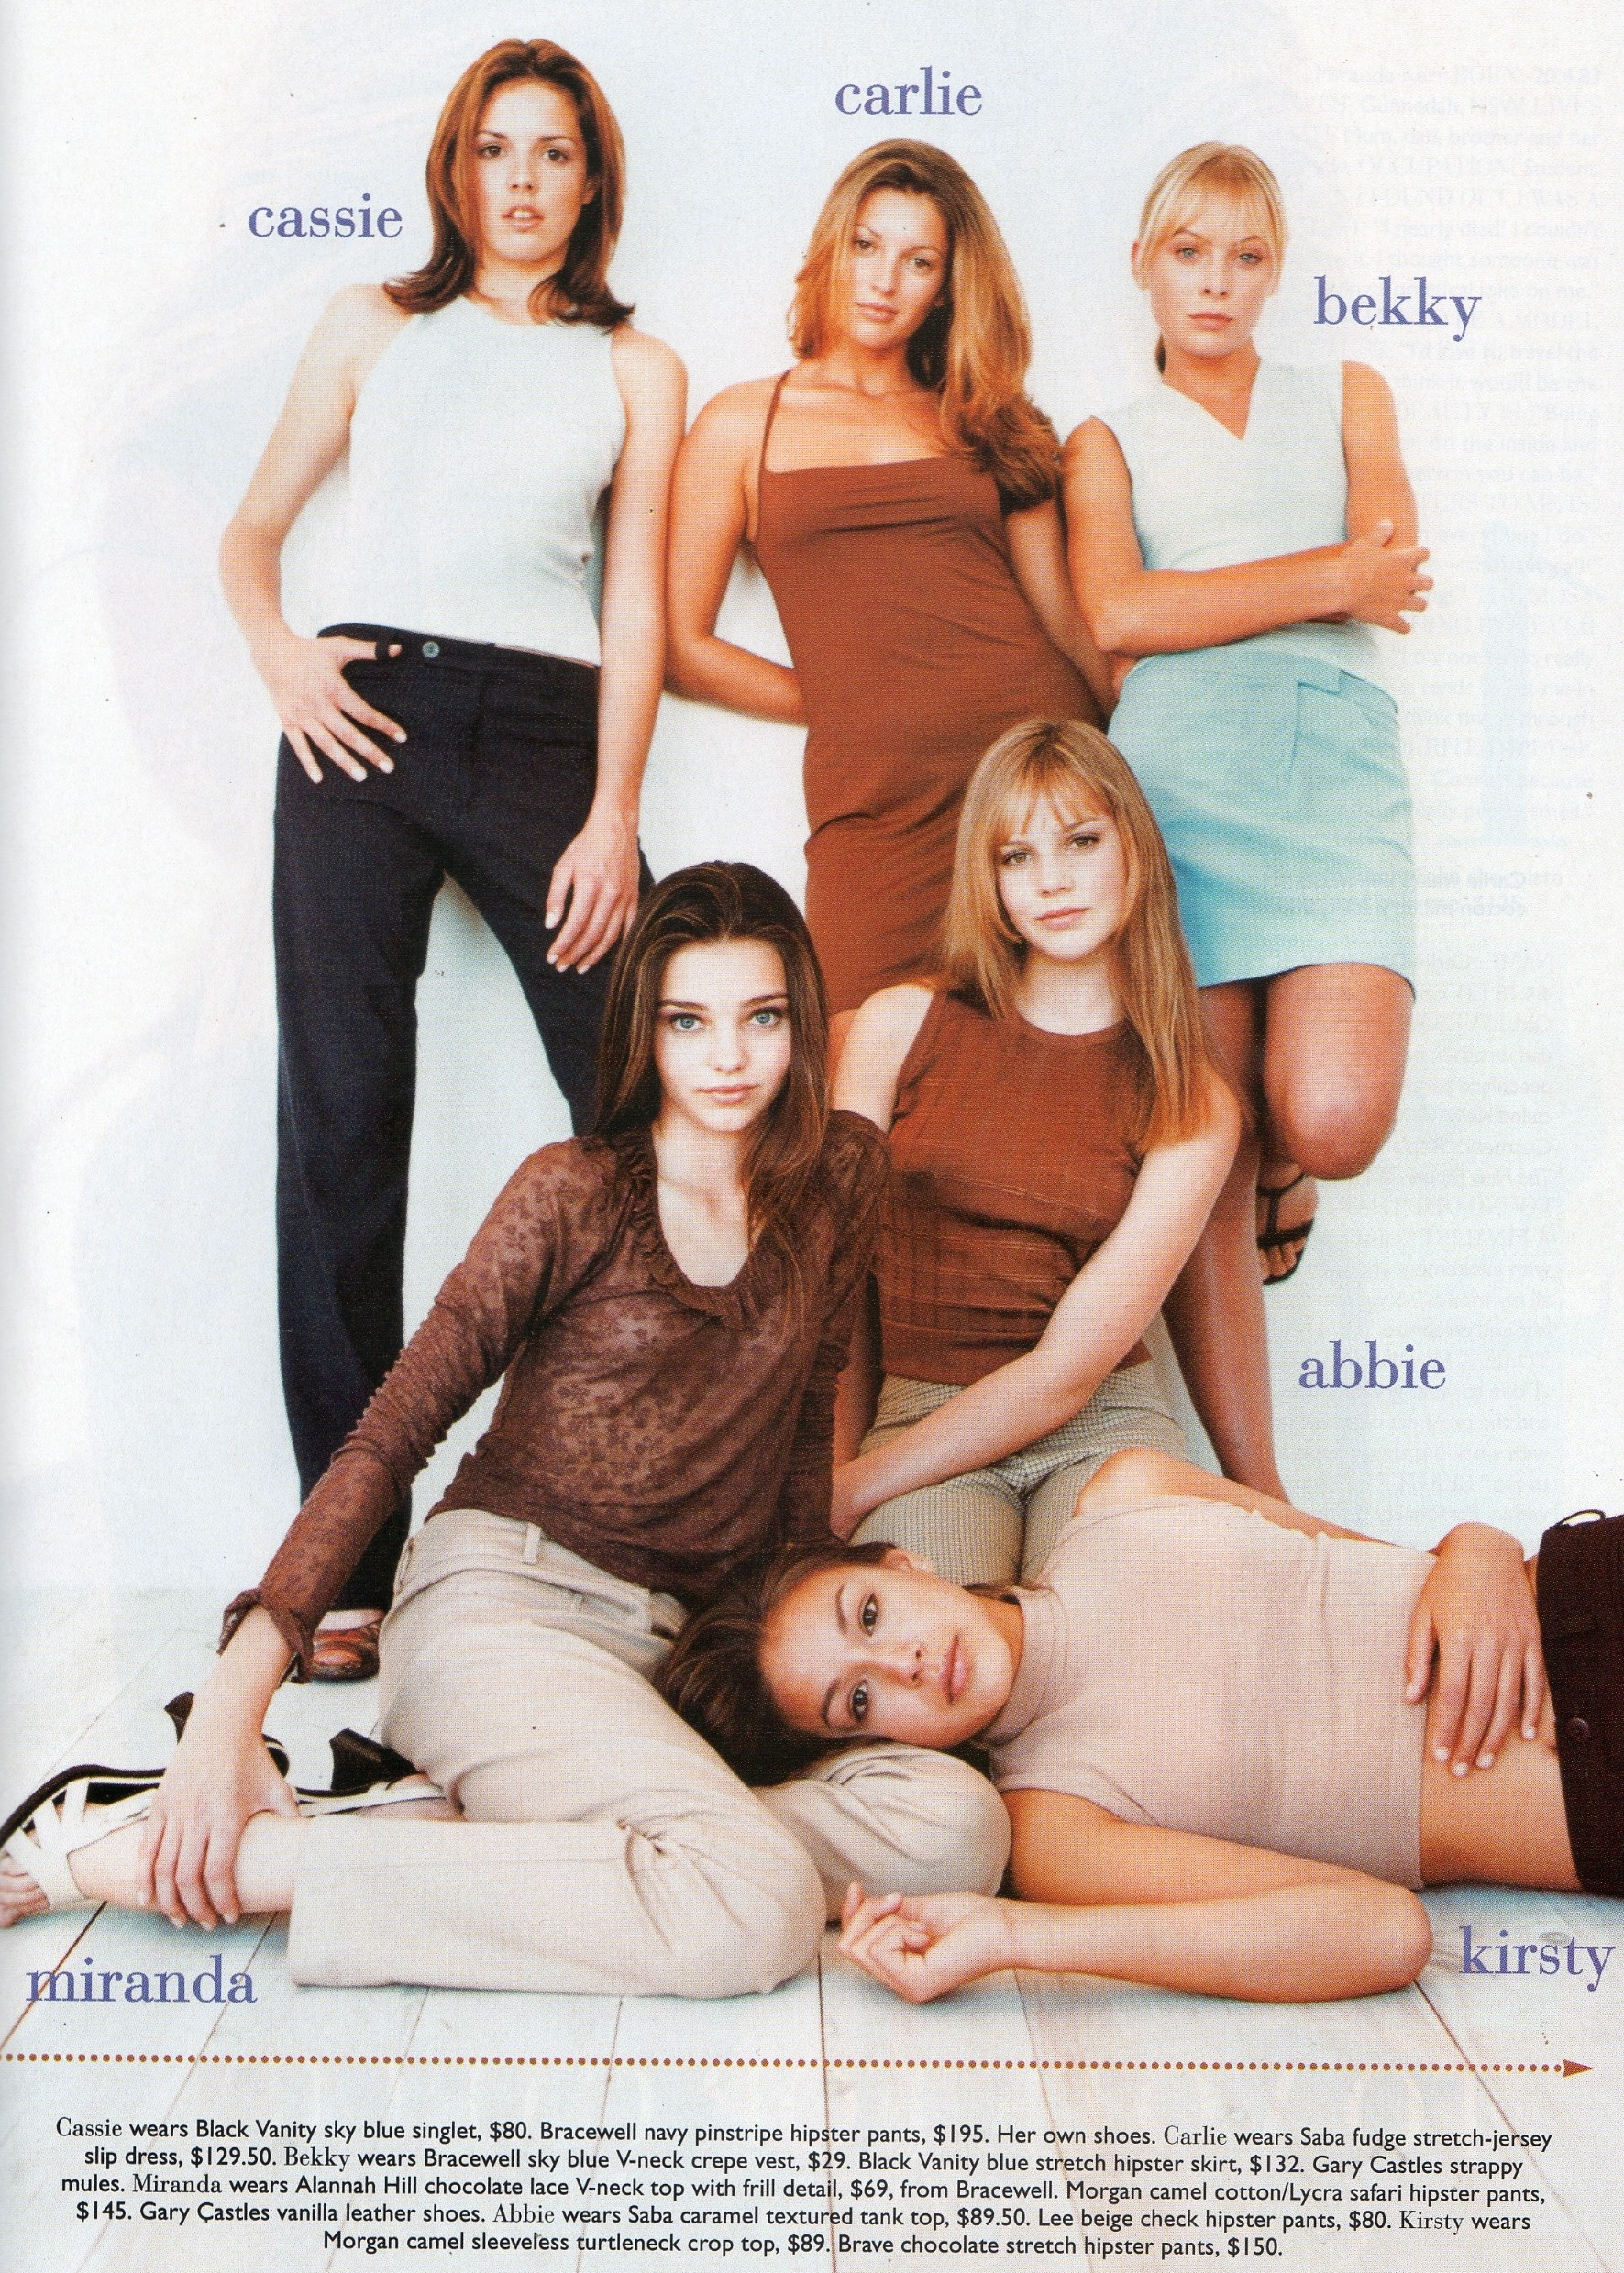 Dolly Magazine Covergirl Competition | 1997 Finalists 02.jpg